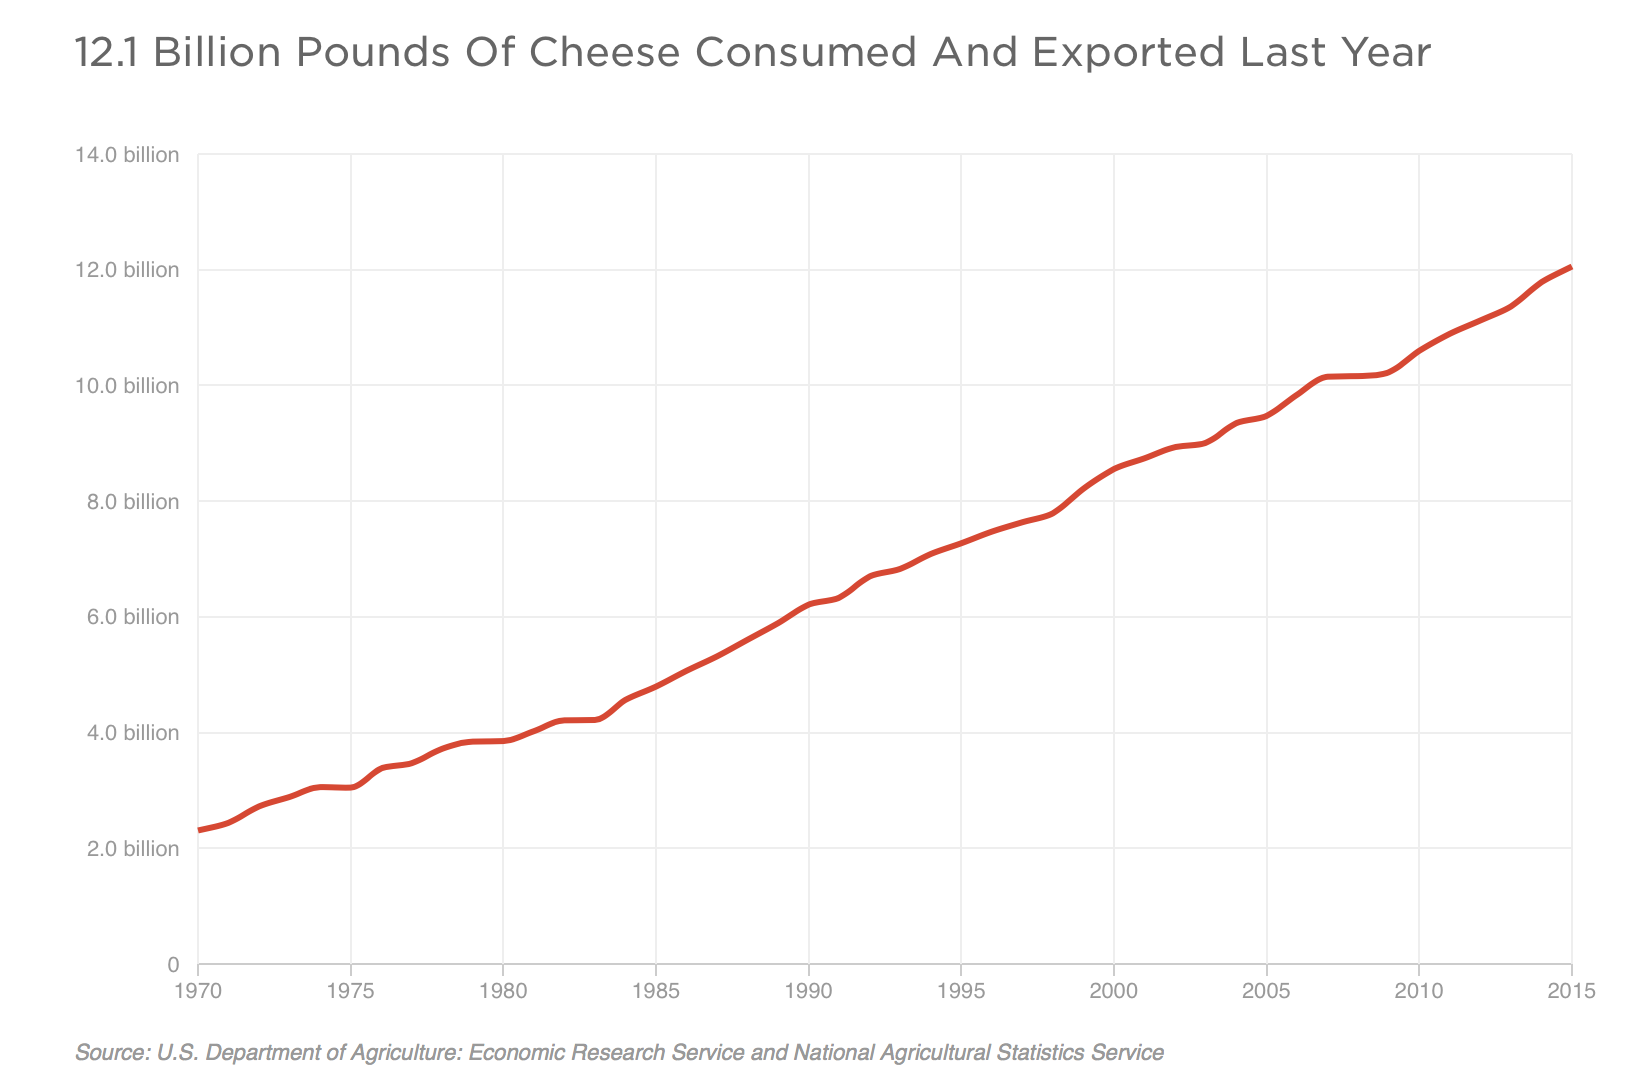 12.1 Billion Pounds Of Cheese Consumed And Exported Last Year